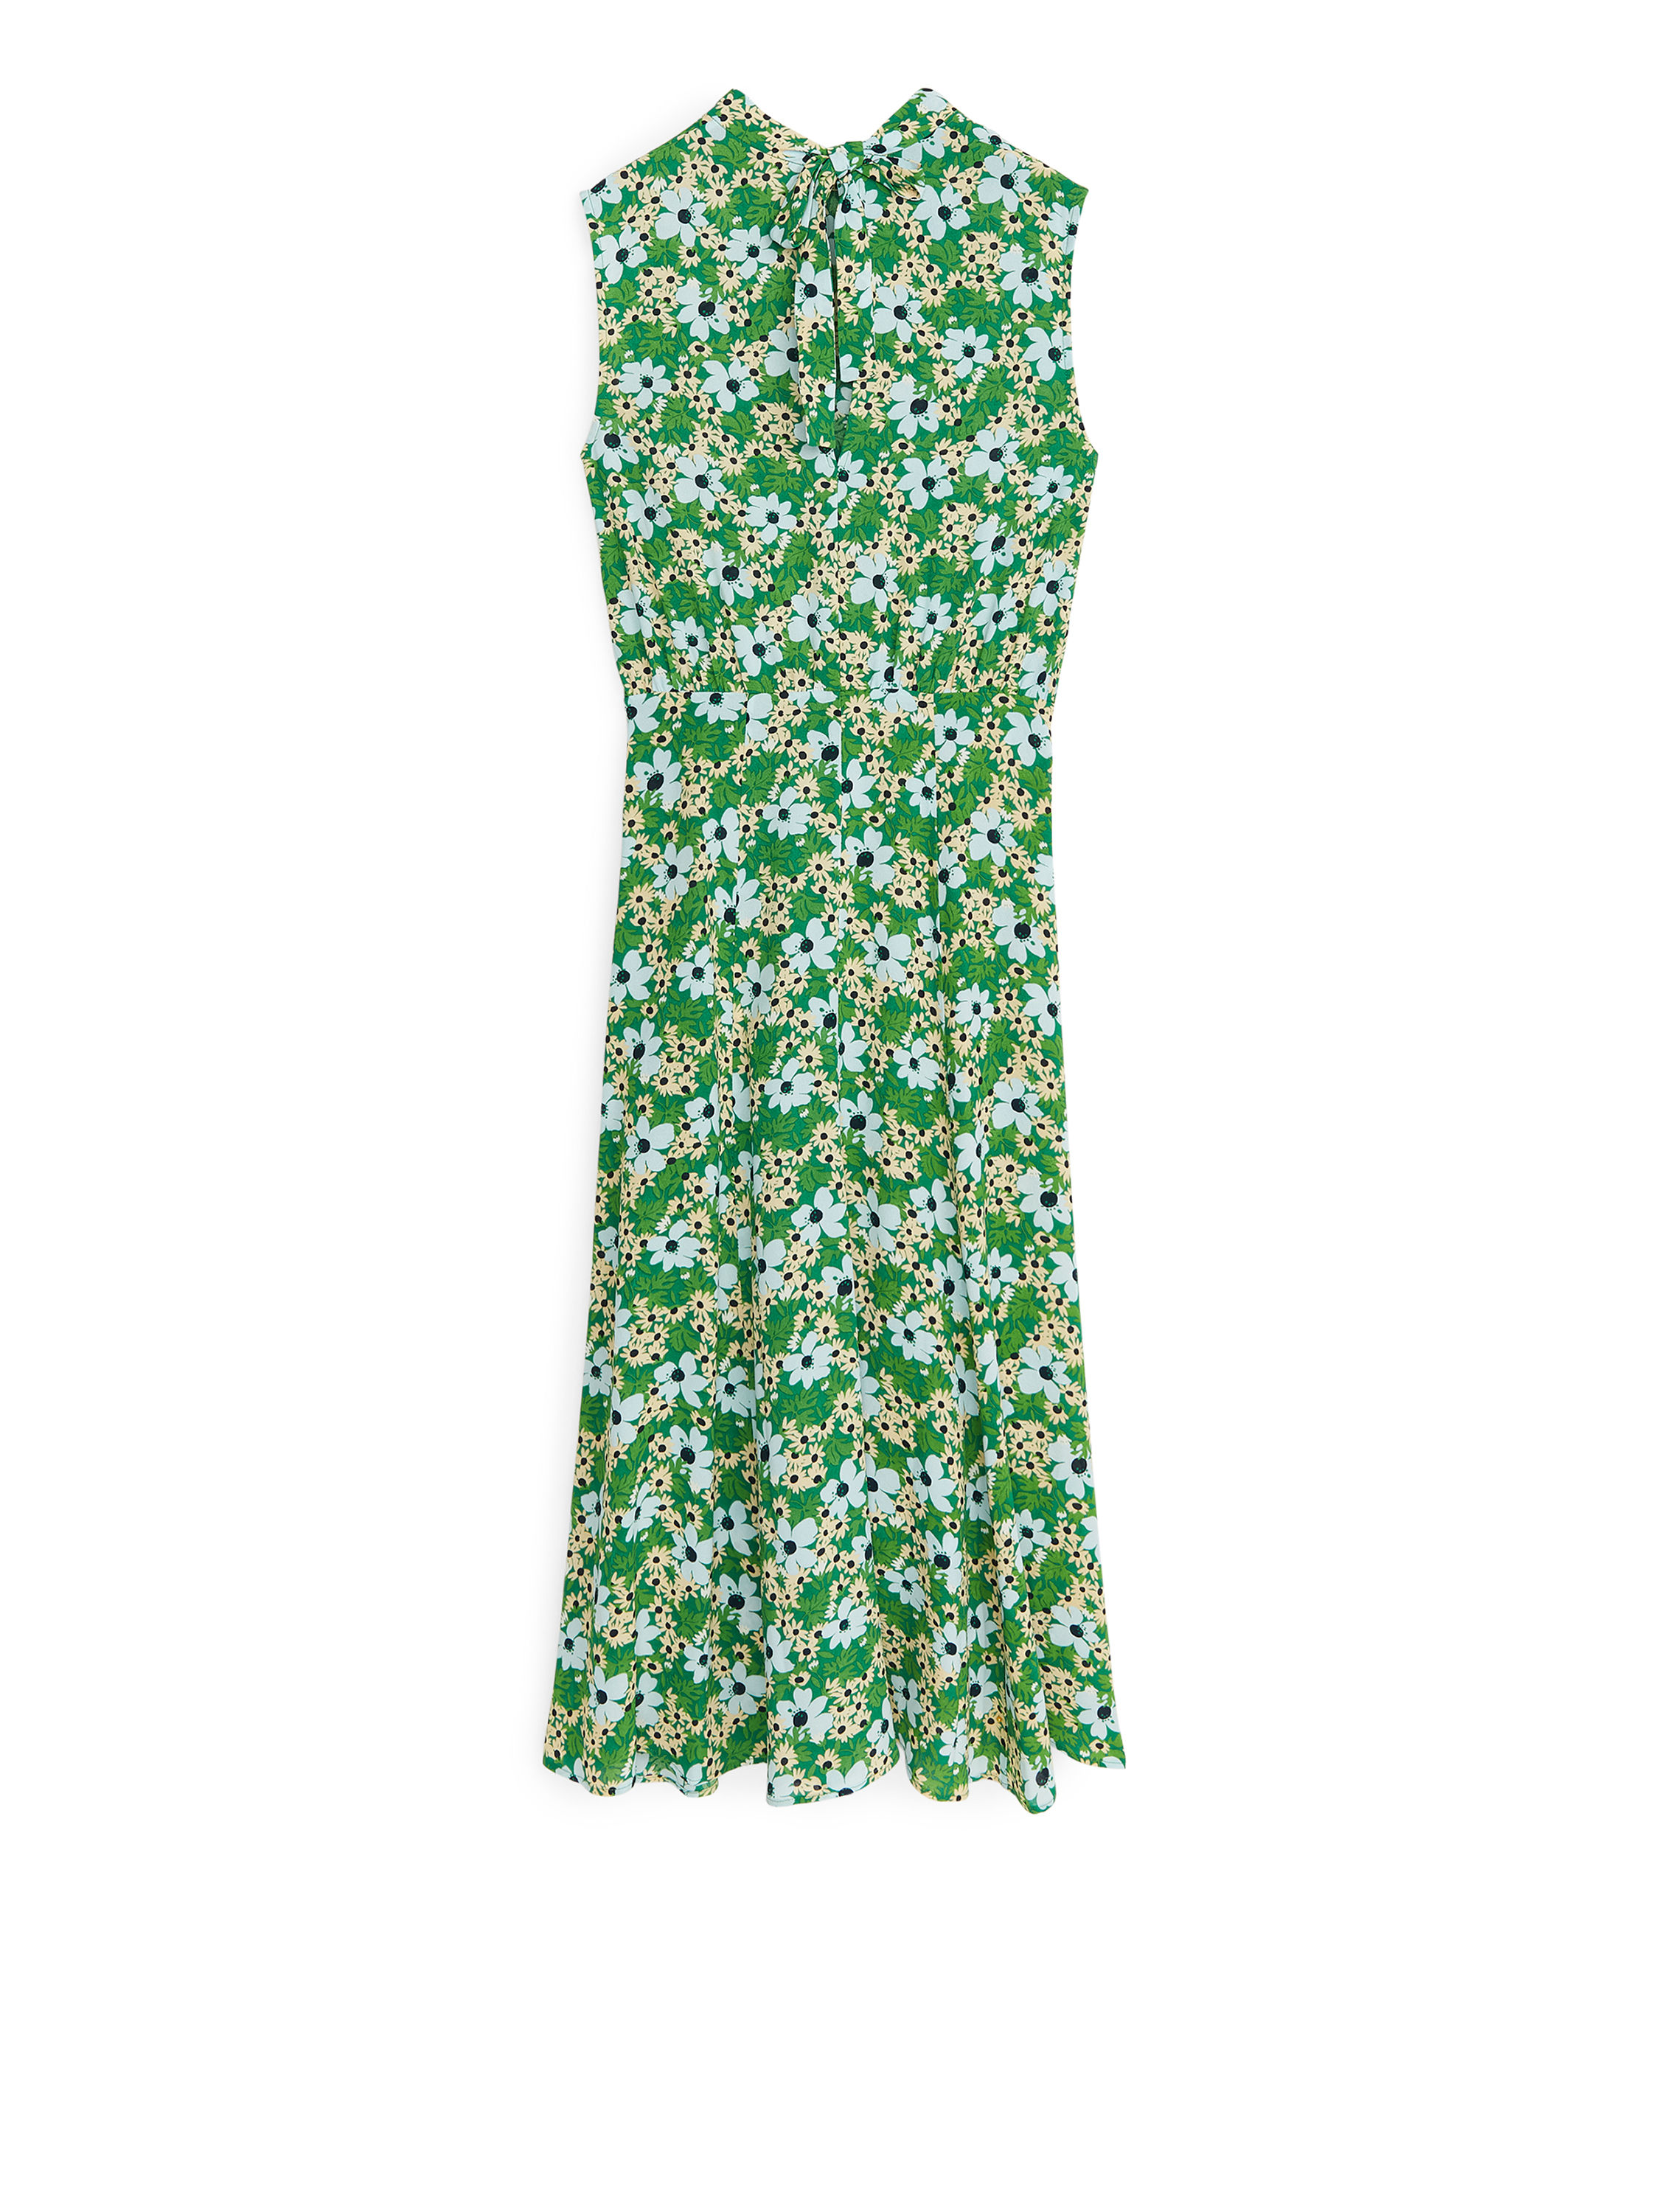 Fabric Swatch image of Arket floral crepe dress in green